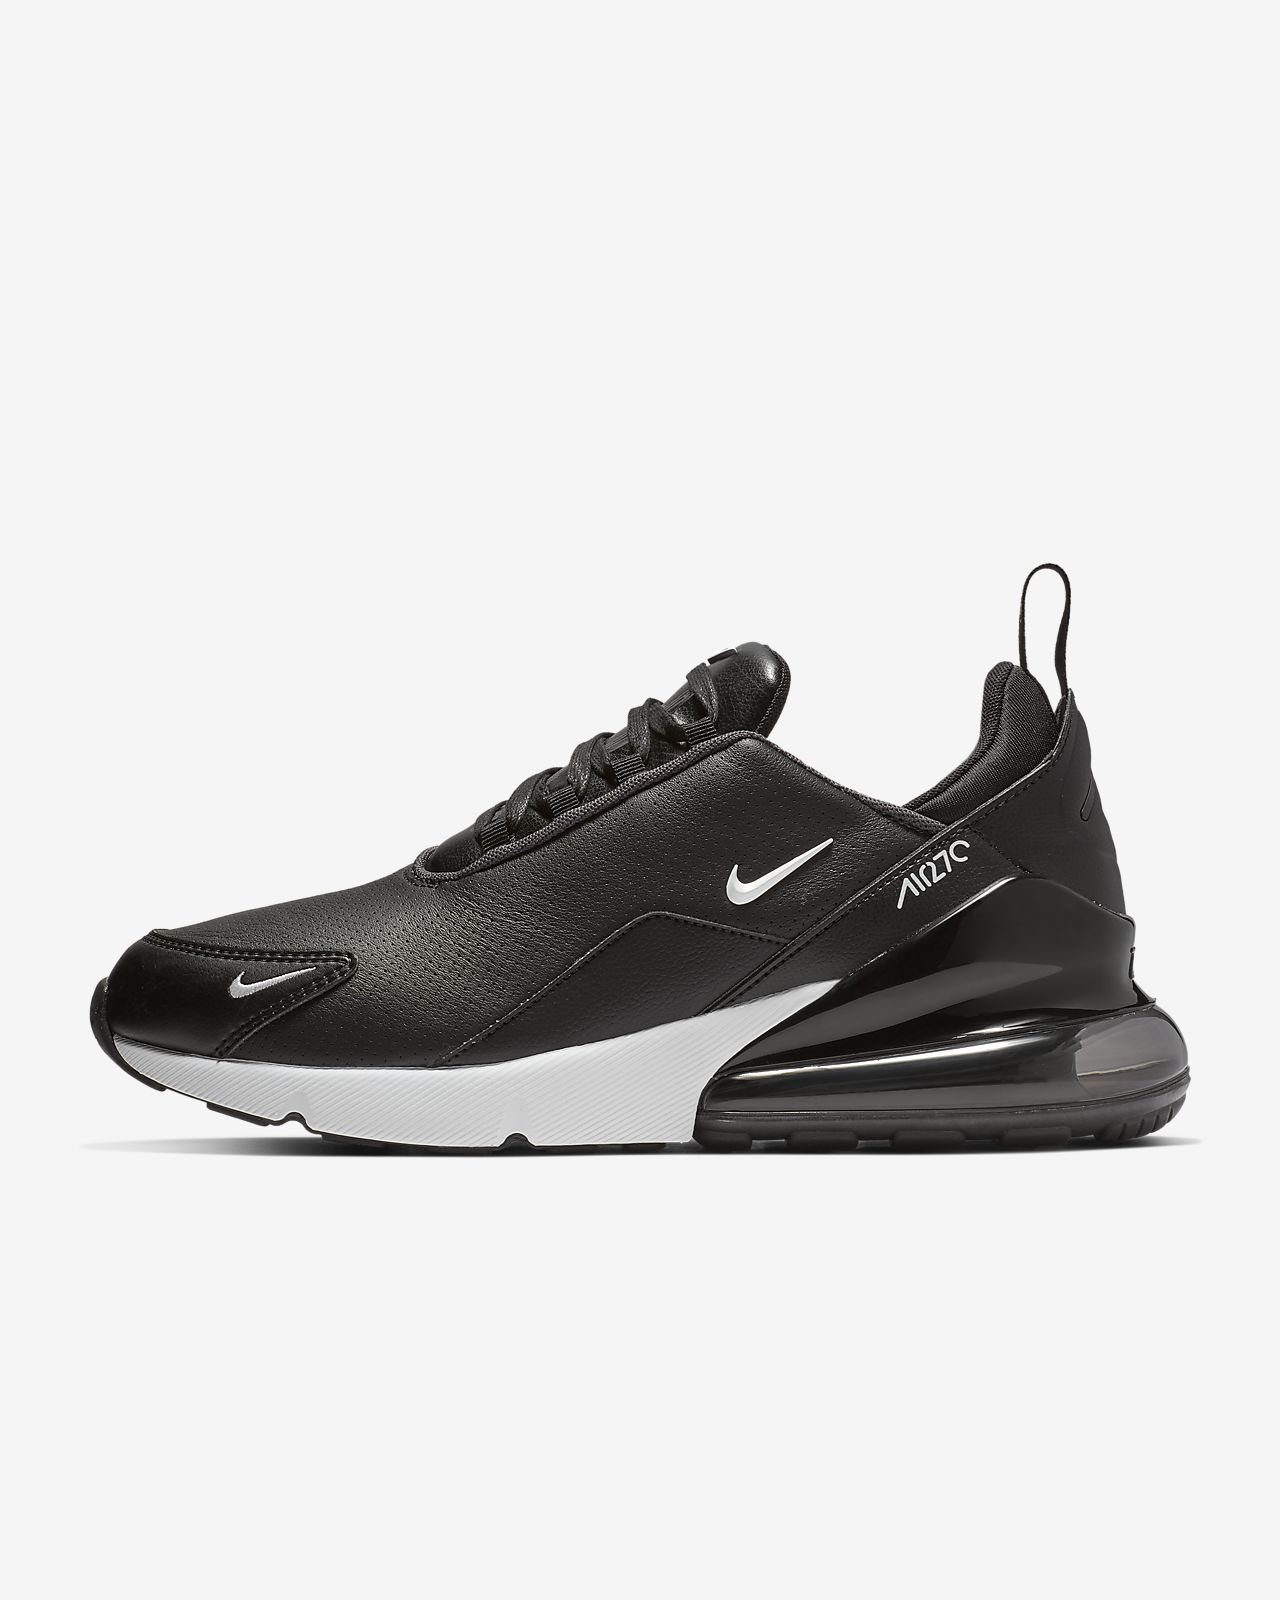 511113a77558c6 Low Resolution Nike Air Max 270 Premium Men's Shoe Nike Air Max 270 Premium  Men's Shoe